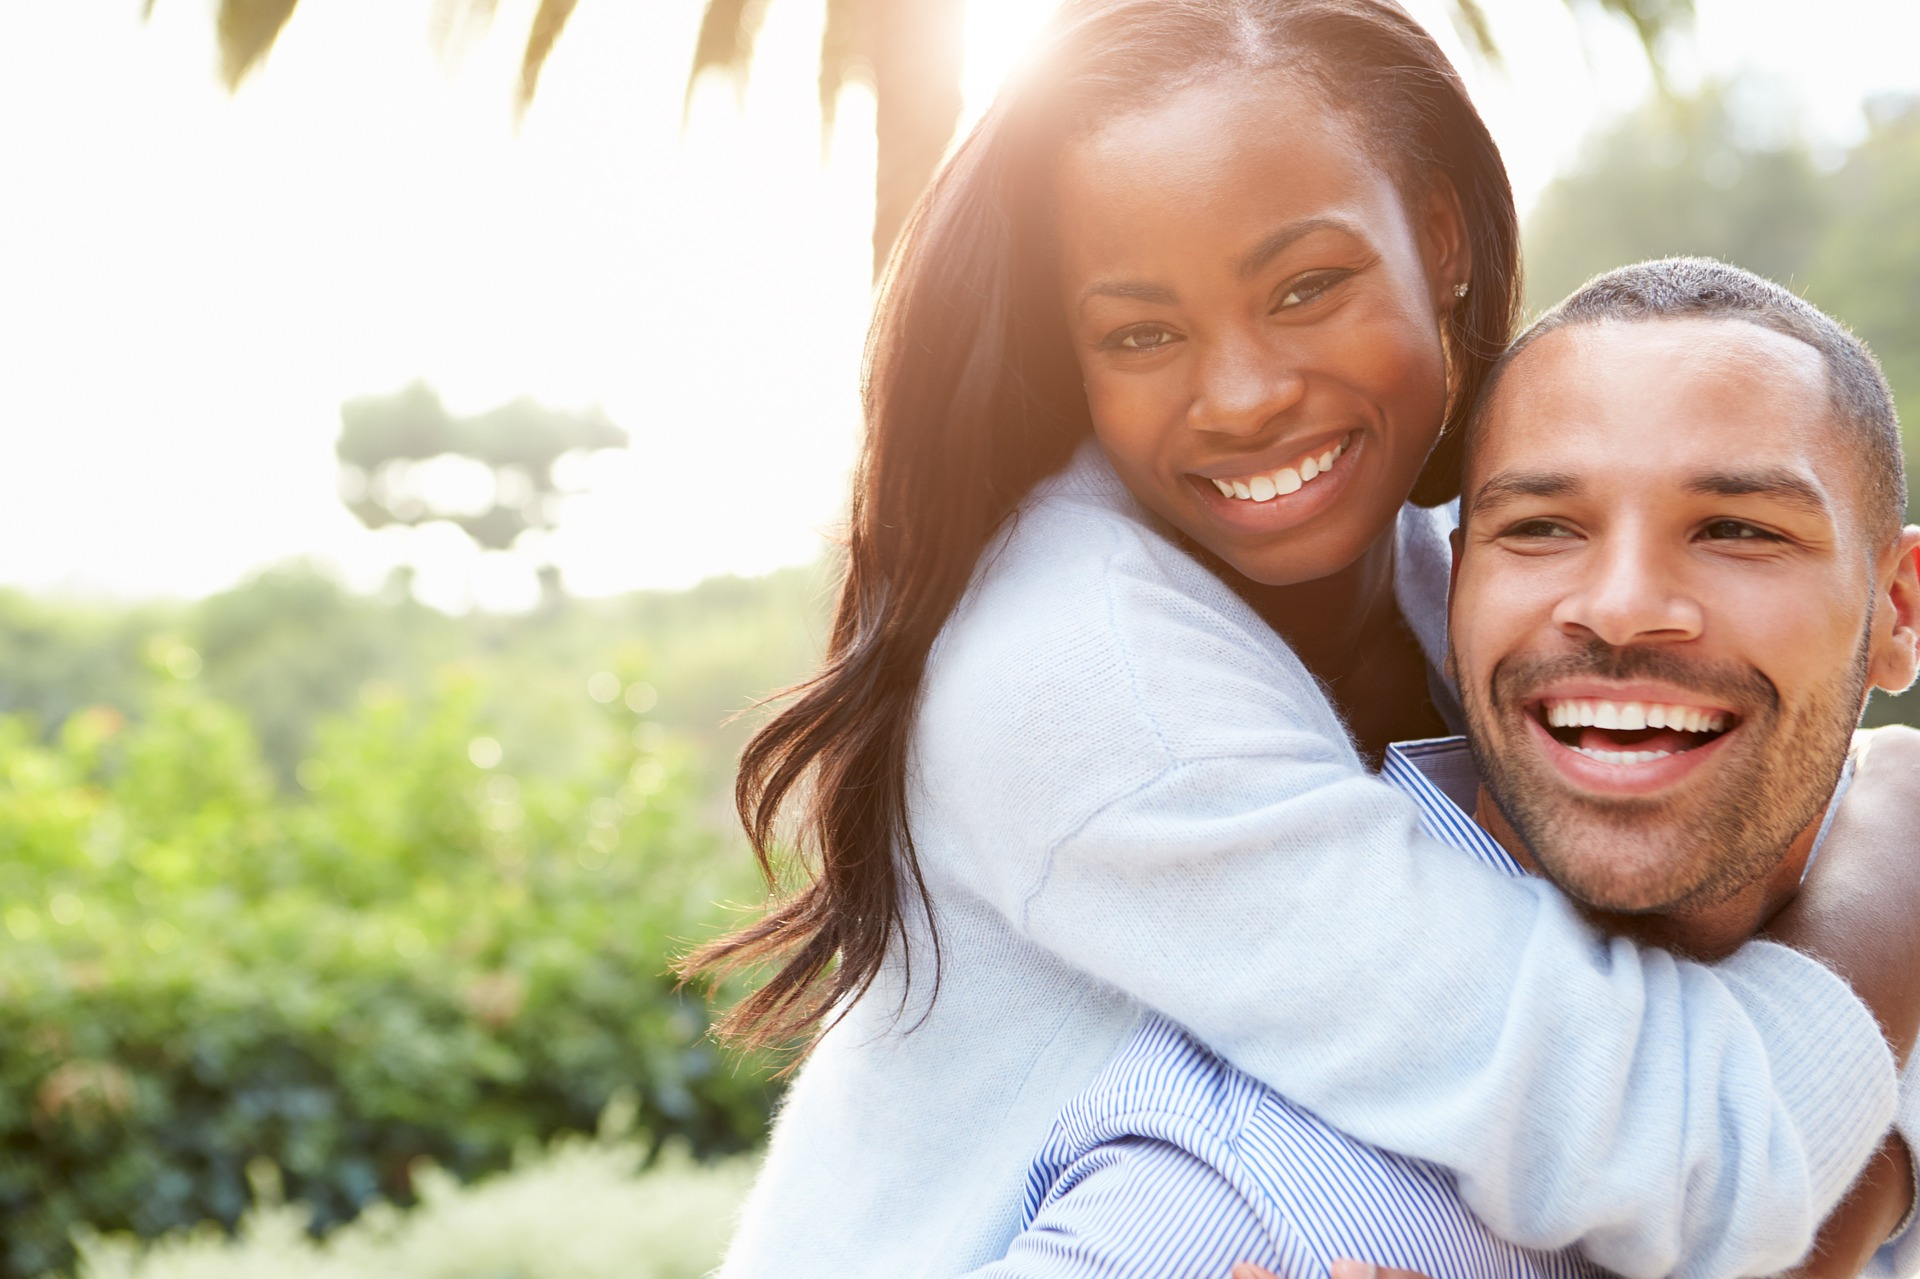 Growing Your Relationship - Building Connection